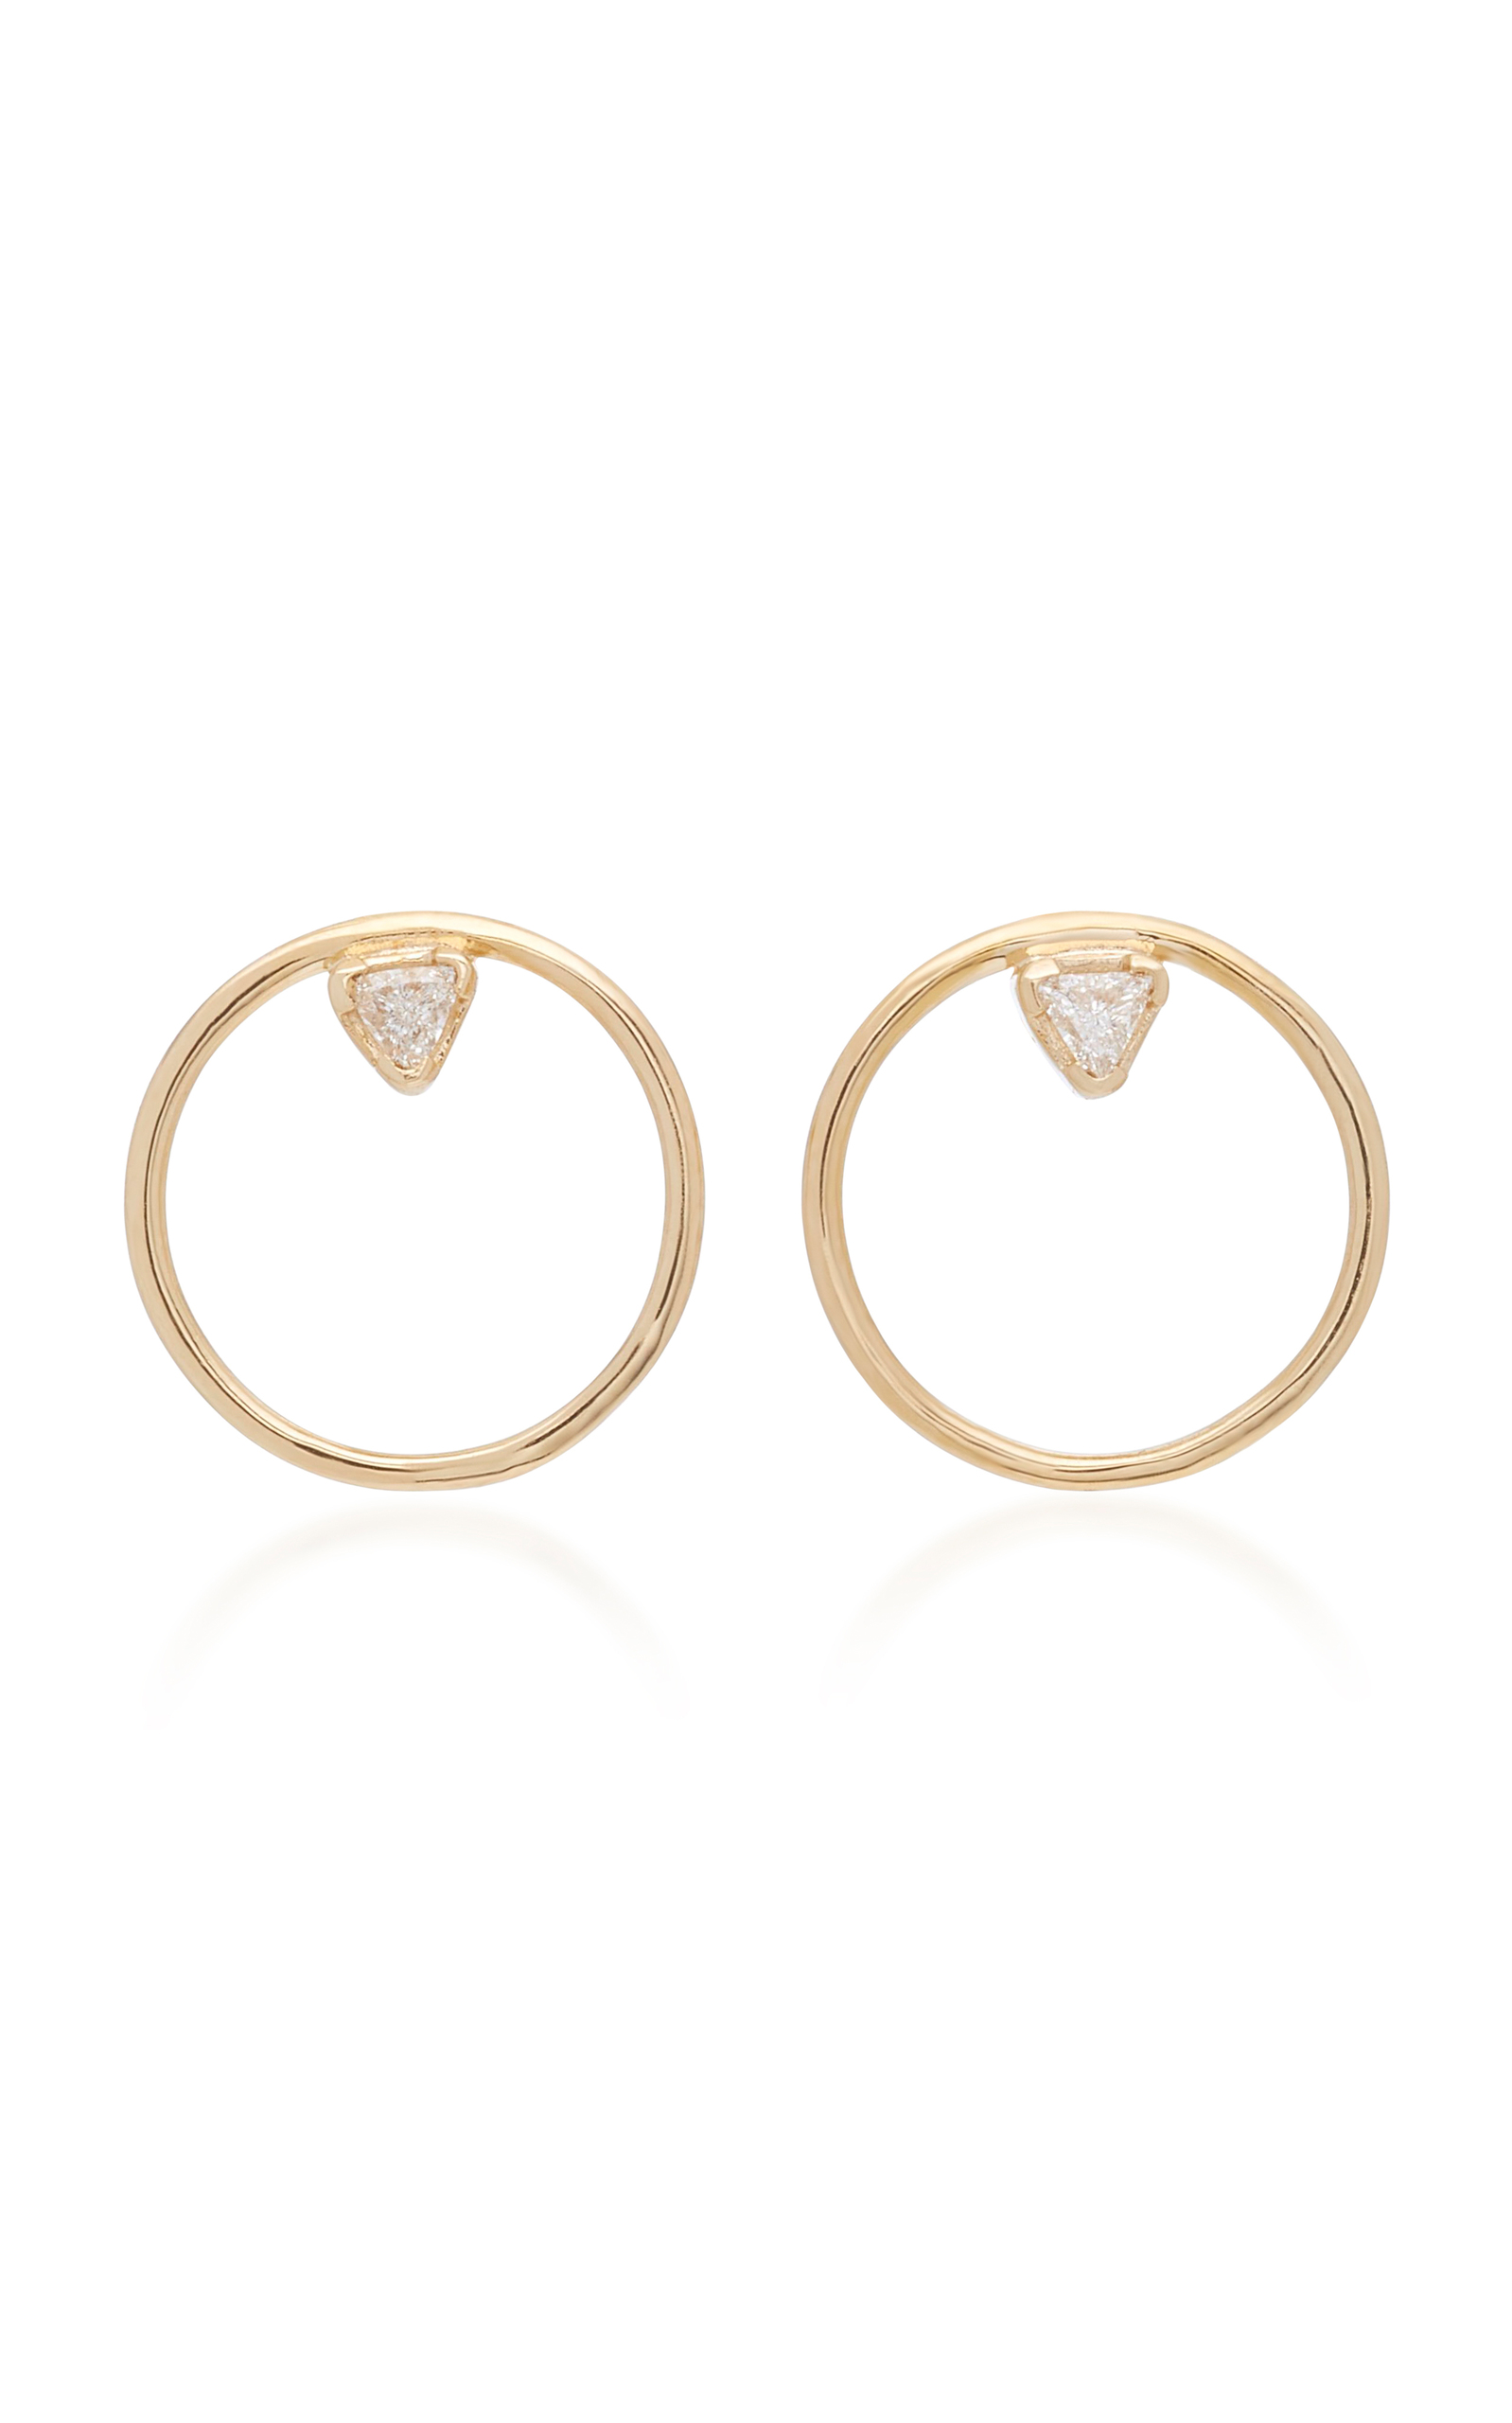 Trillion 14K Gold Diamond Hoop Dangle Earrings by